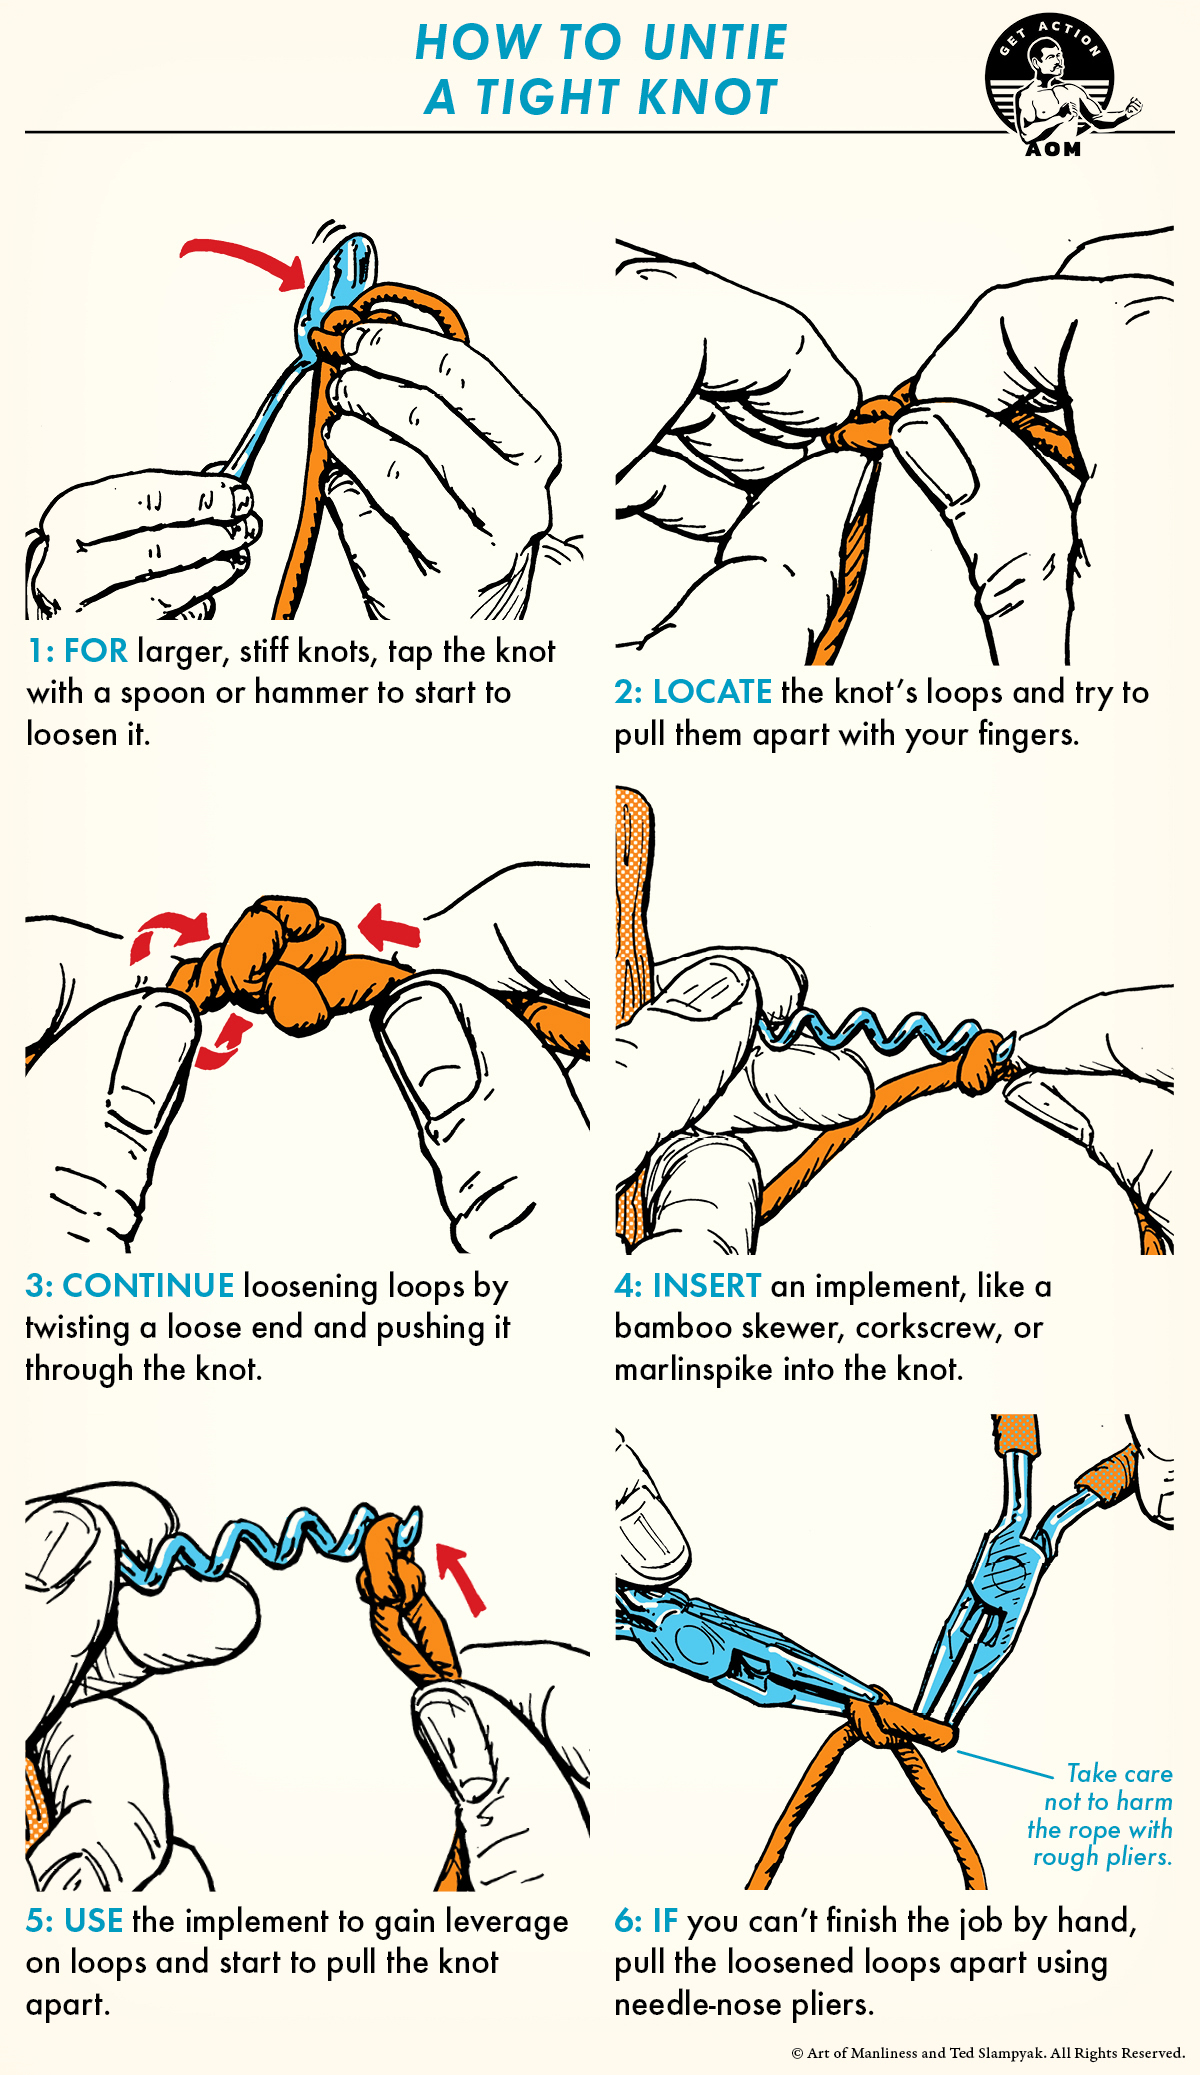 Six basic steps to untie a tight knot.